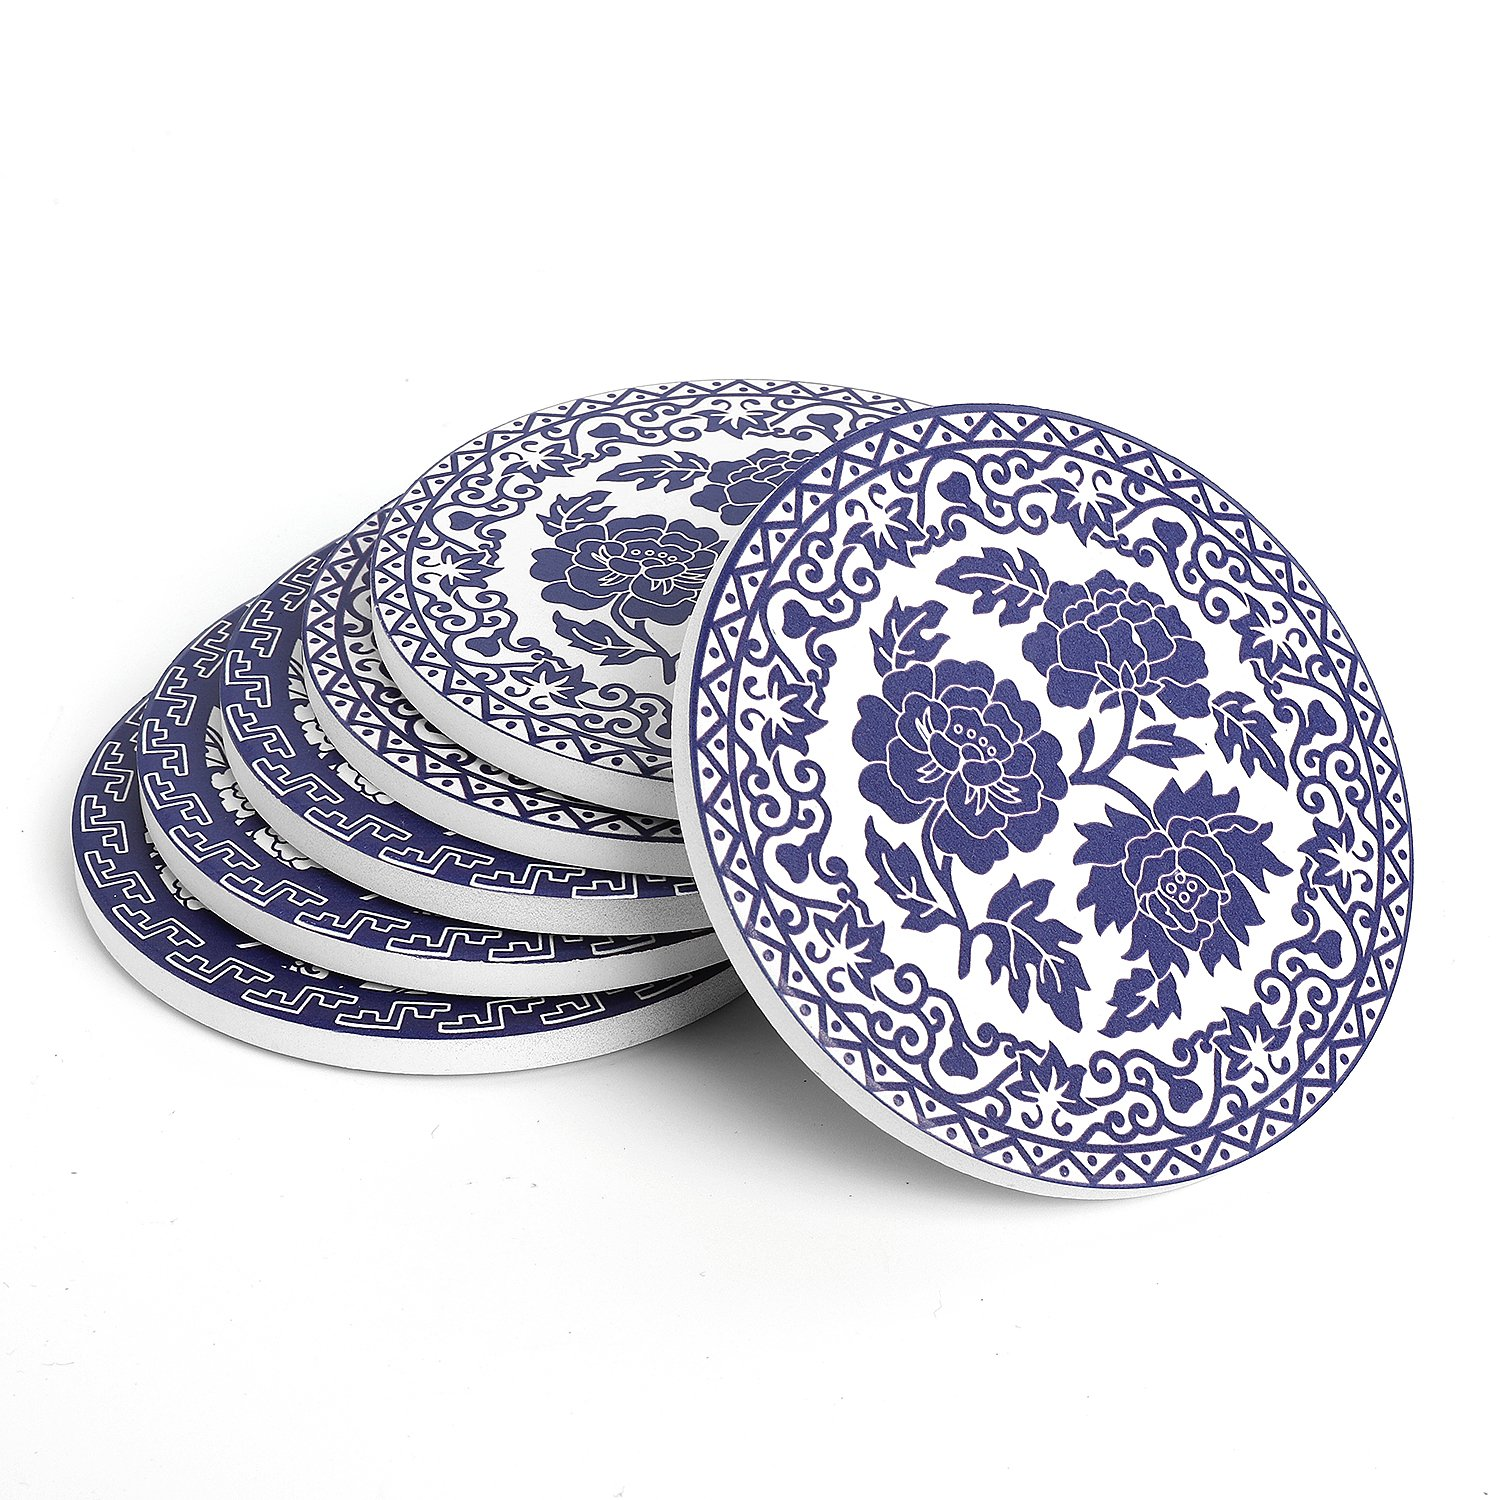 Teocera Drink Coasters - Blue and White China Absorbing Stone Coasters with Cork Base, Set of 6